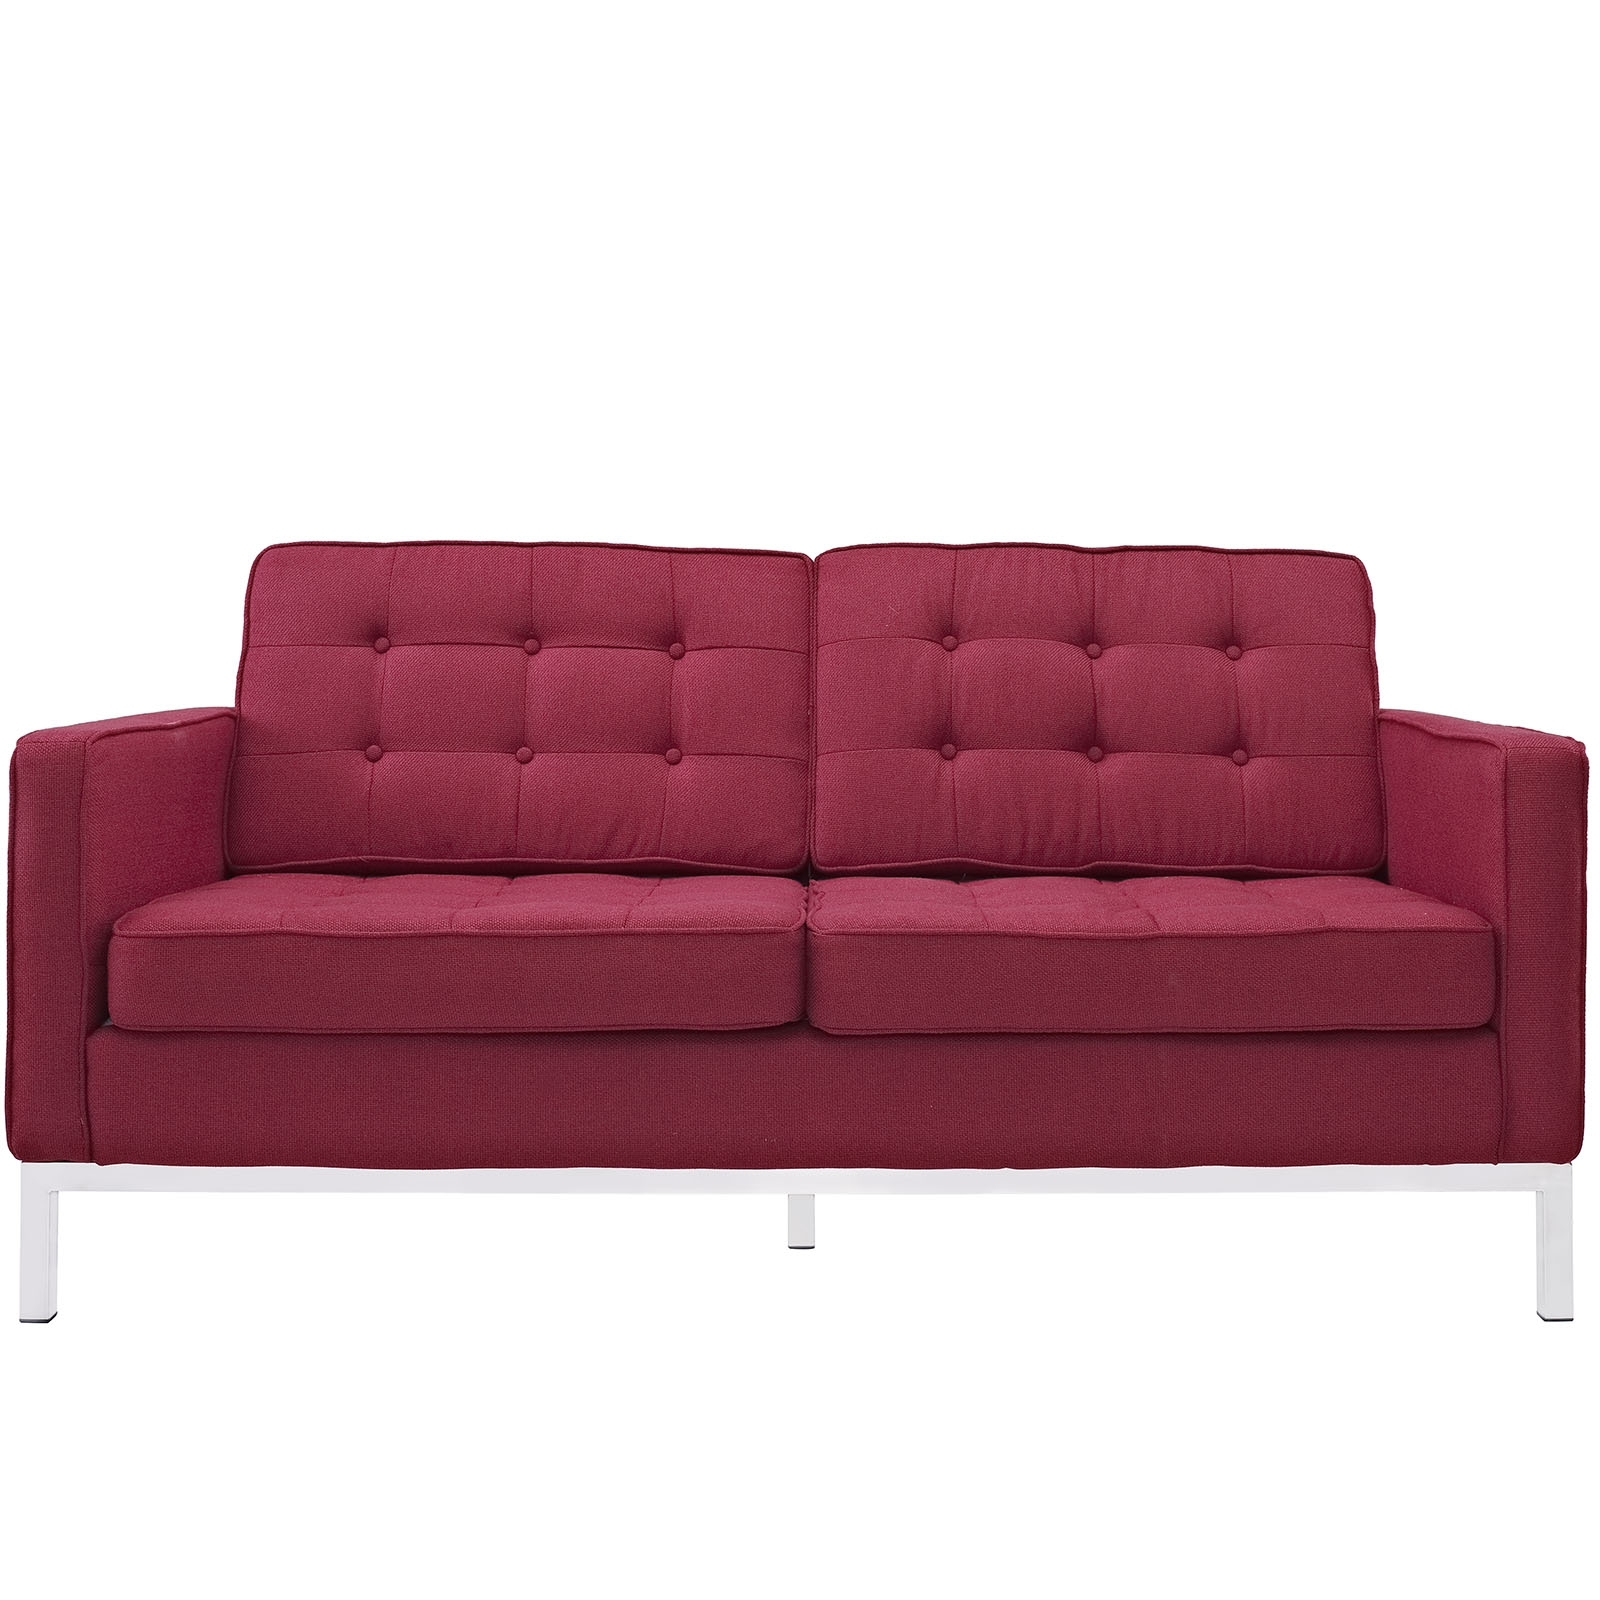 Florence Knoll Style Loveseat Couch – Wool Throughout Latest Florence Knoll Style Sofas (View 7 of 20)